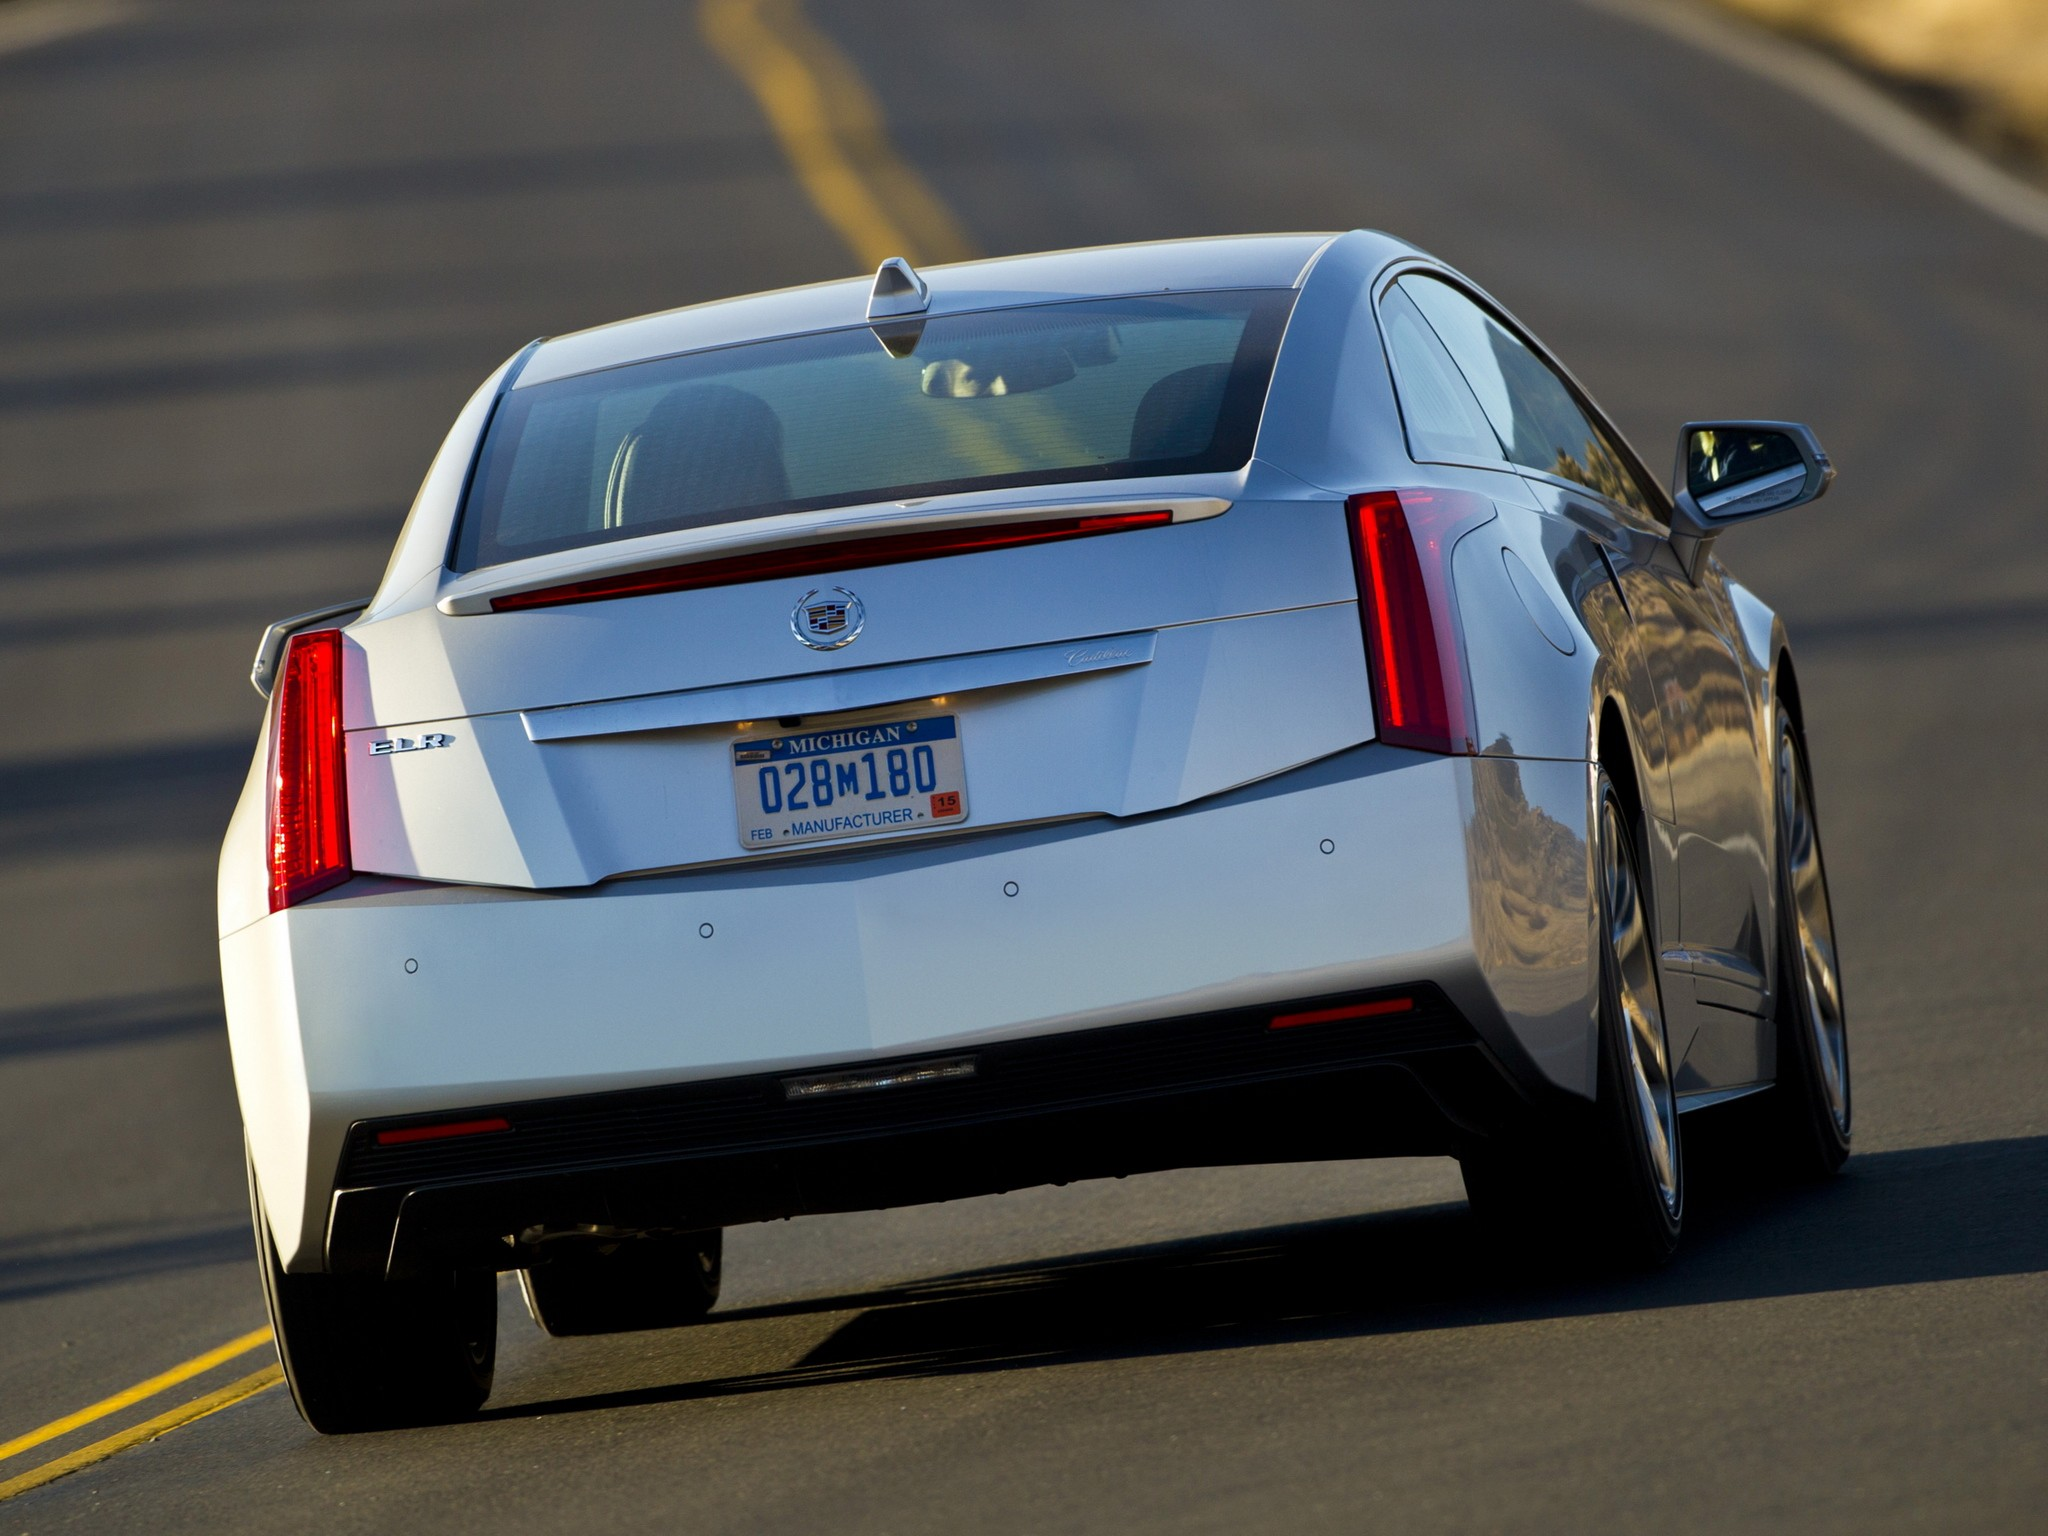 2020 Cadillac ELR S Price, Design and Review